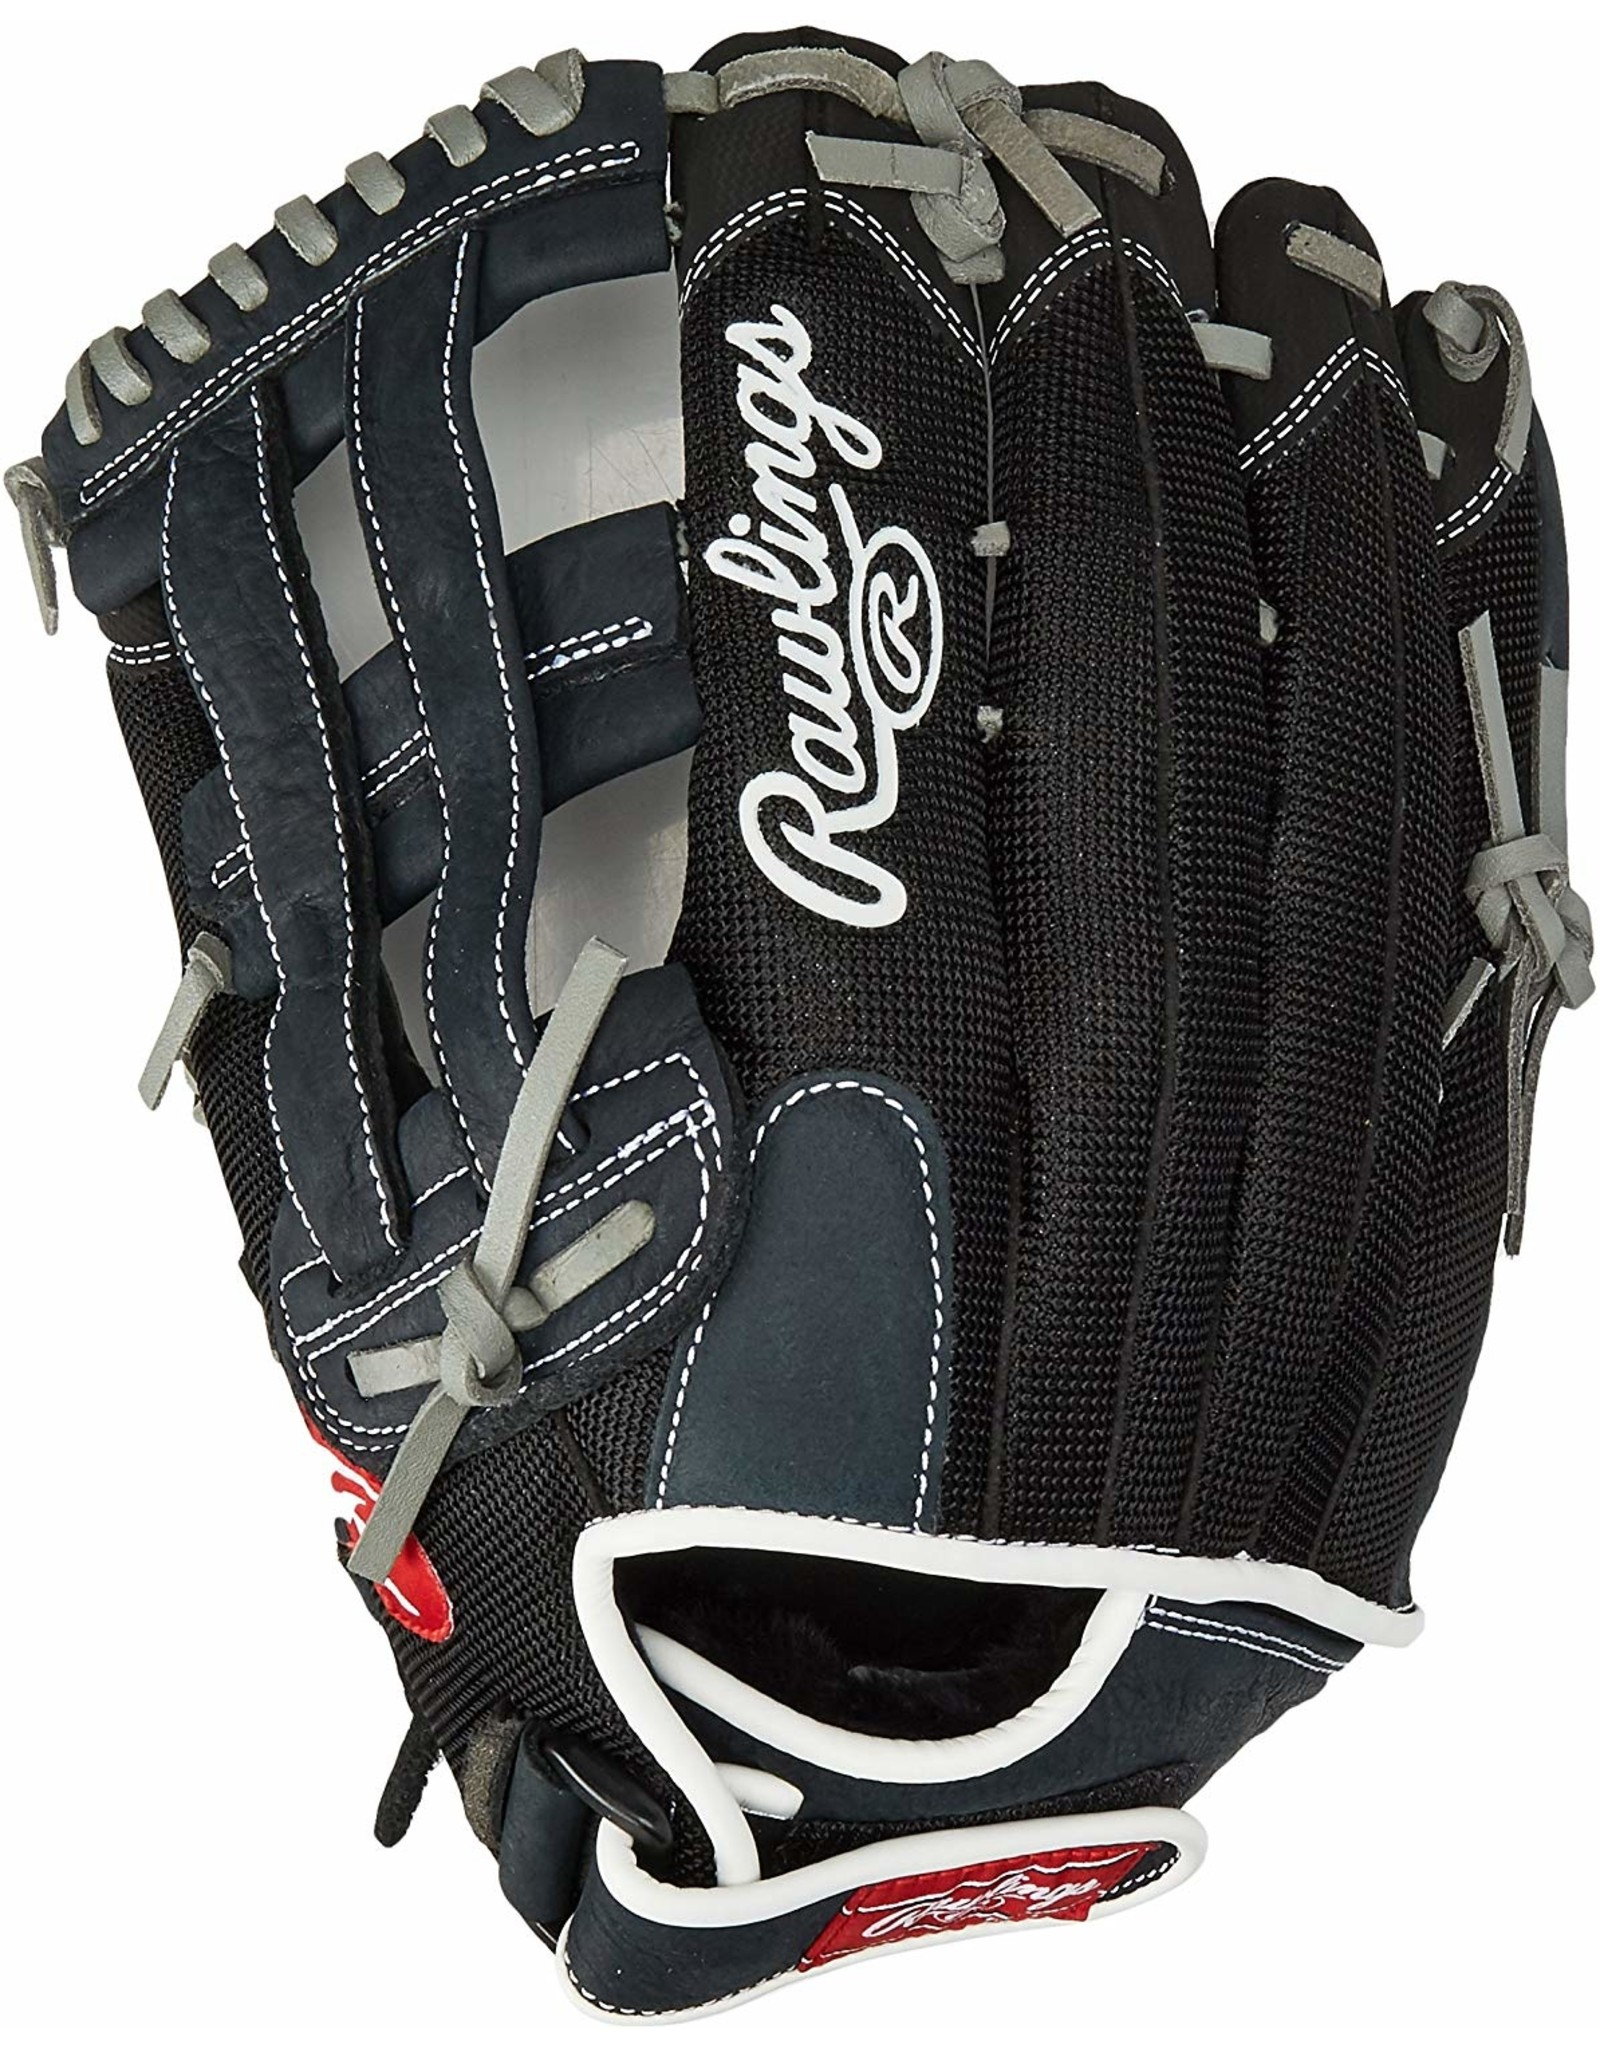 RAWLINGS Gants Baseball Rawiling Renegade GAUCHER